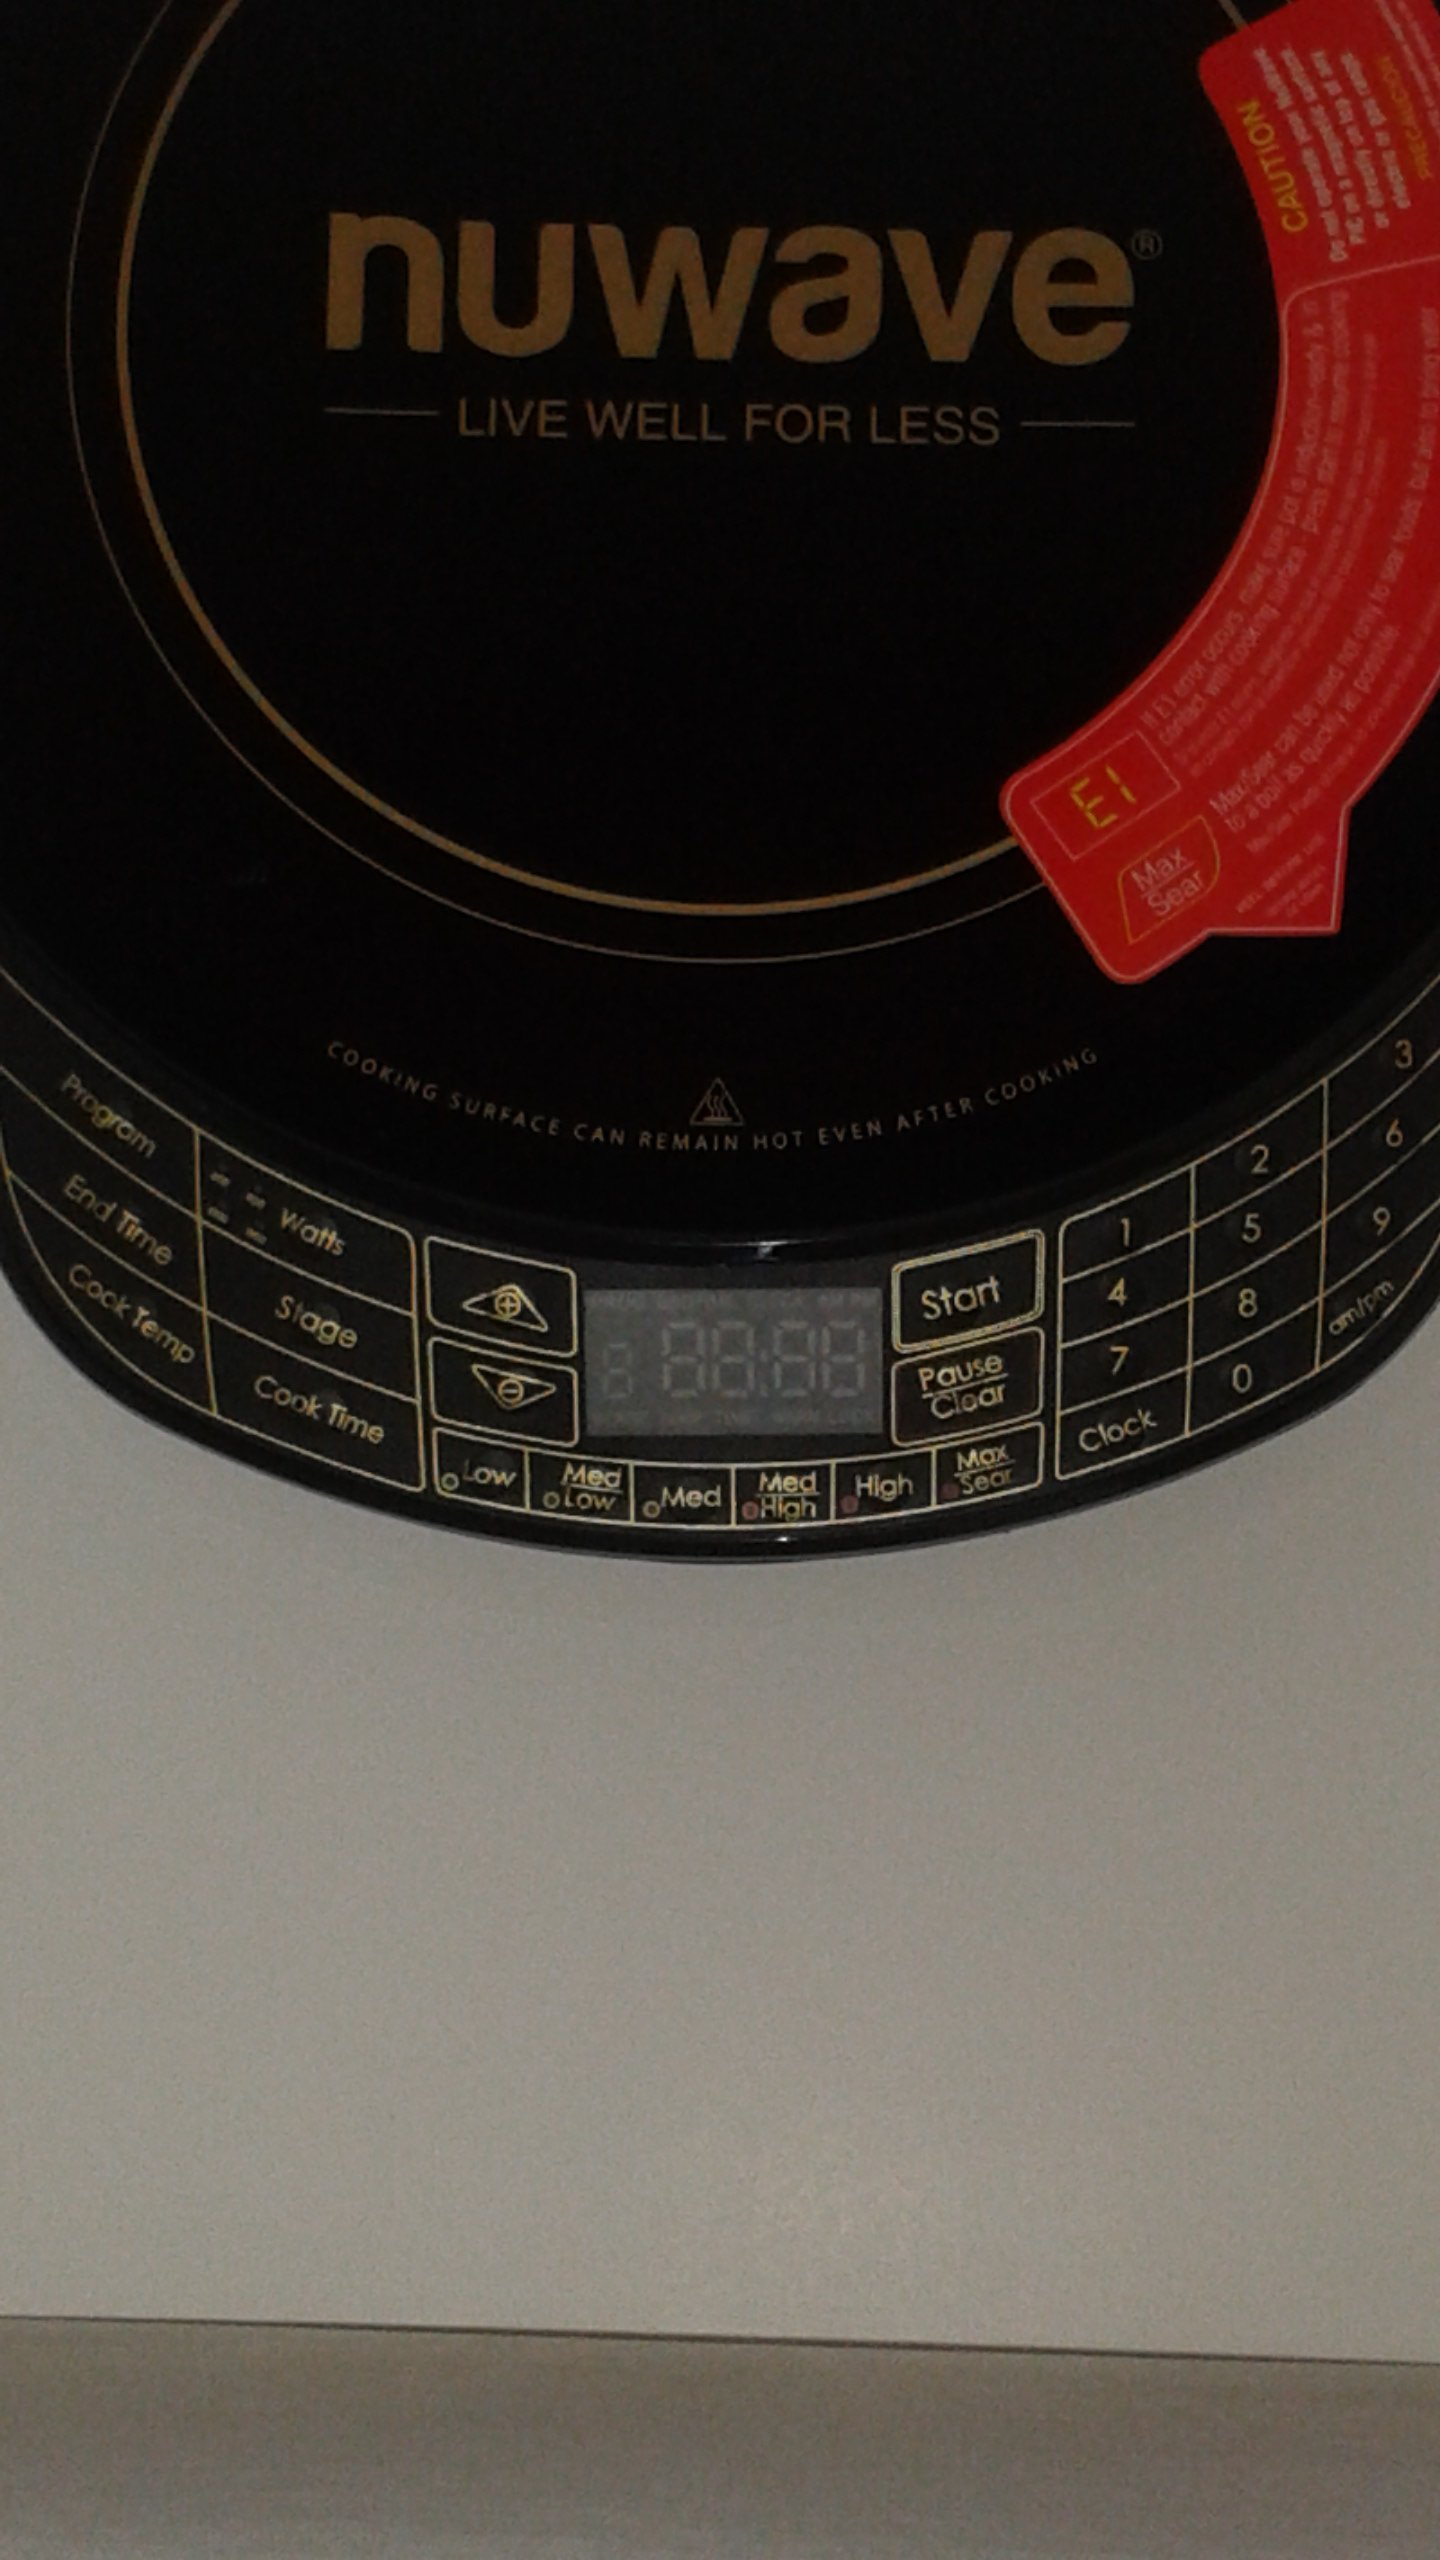 NuWave Platinum 30401 Precision Induction Cooktop, Black with Remote and Advanced Features for 2017 by NuWave (Image #6)